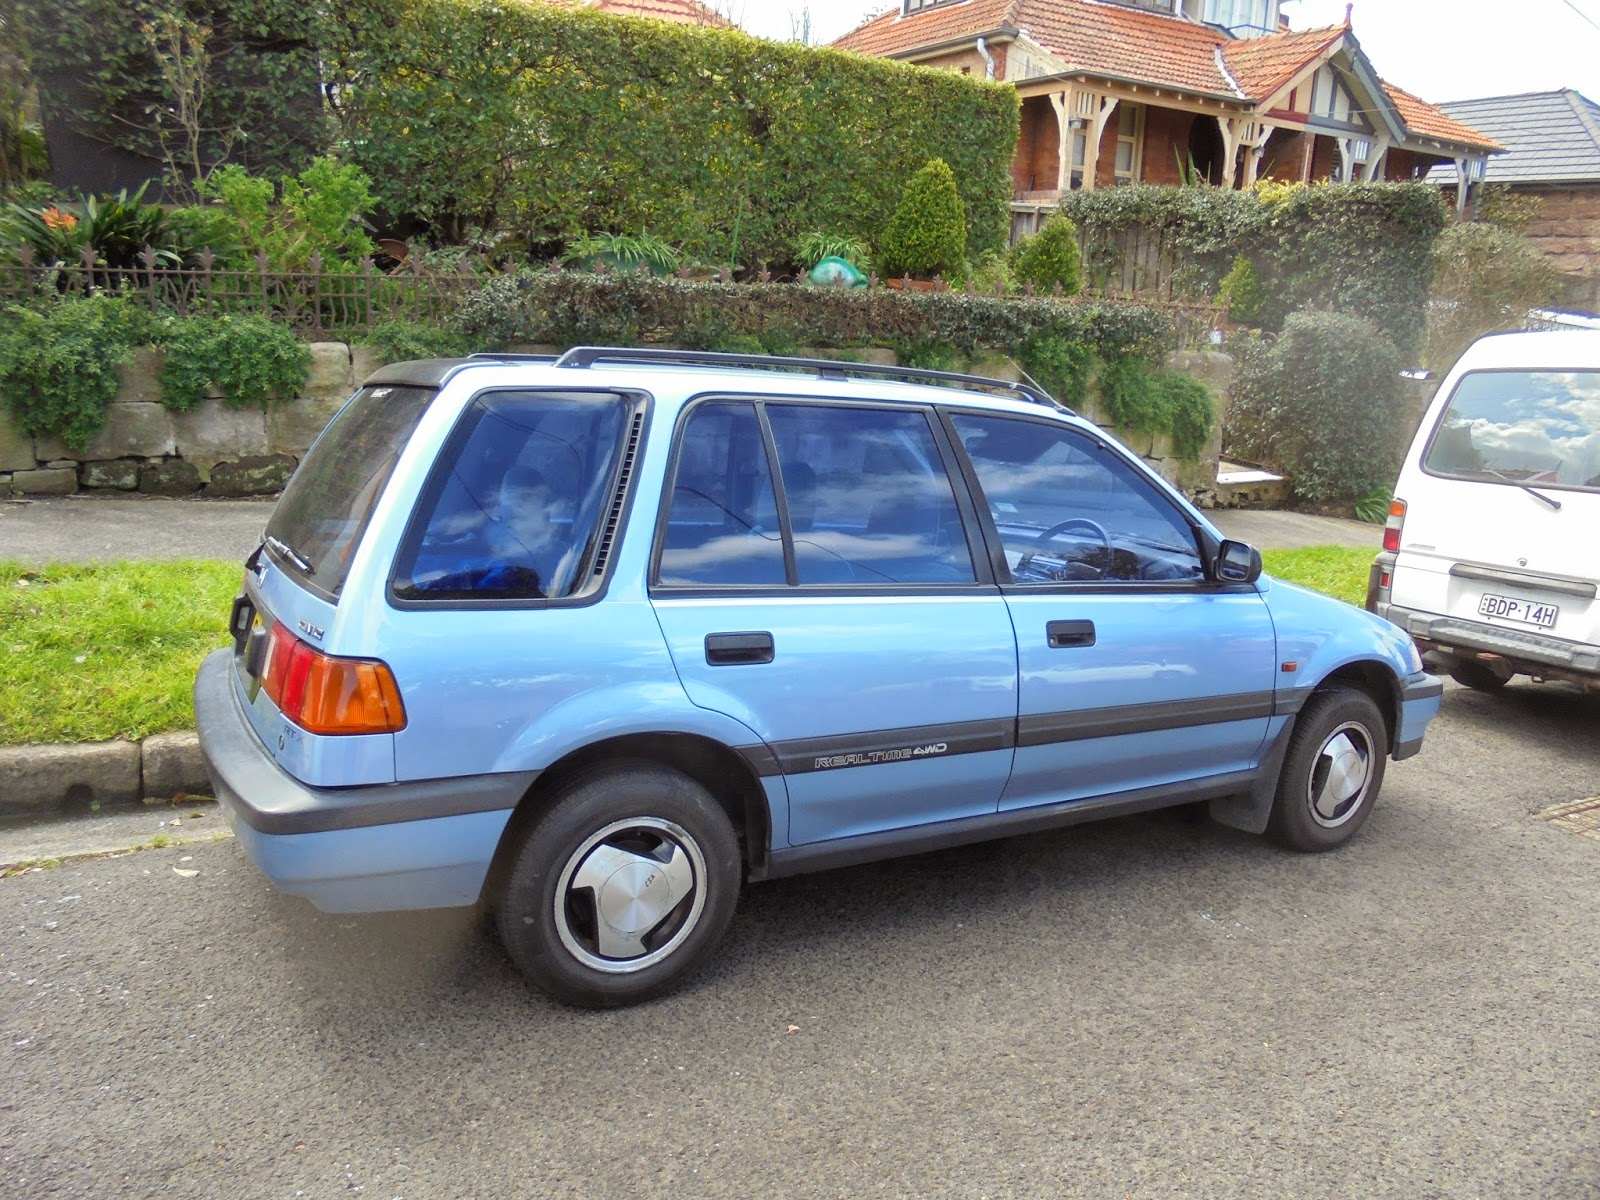 Aussie Old Parked Cars: 1988 Honda Civic RTX Real Time 4WD ...